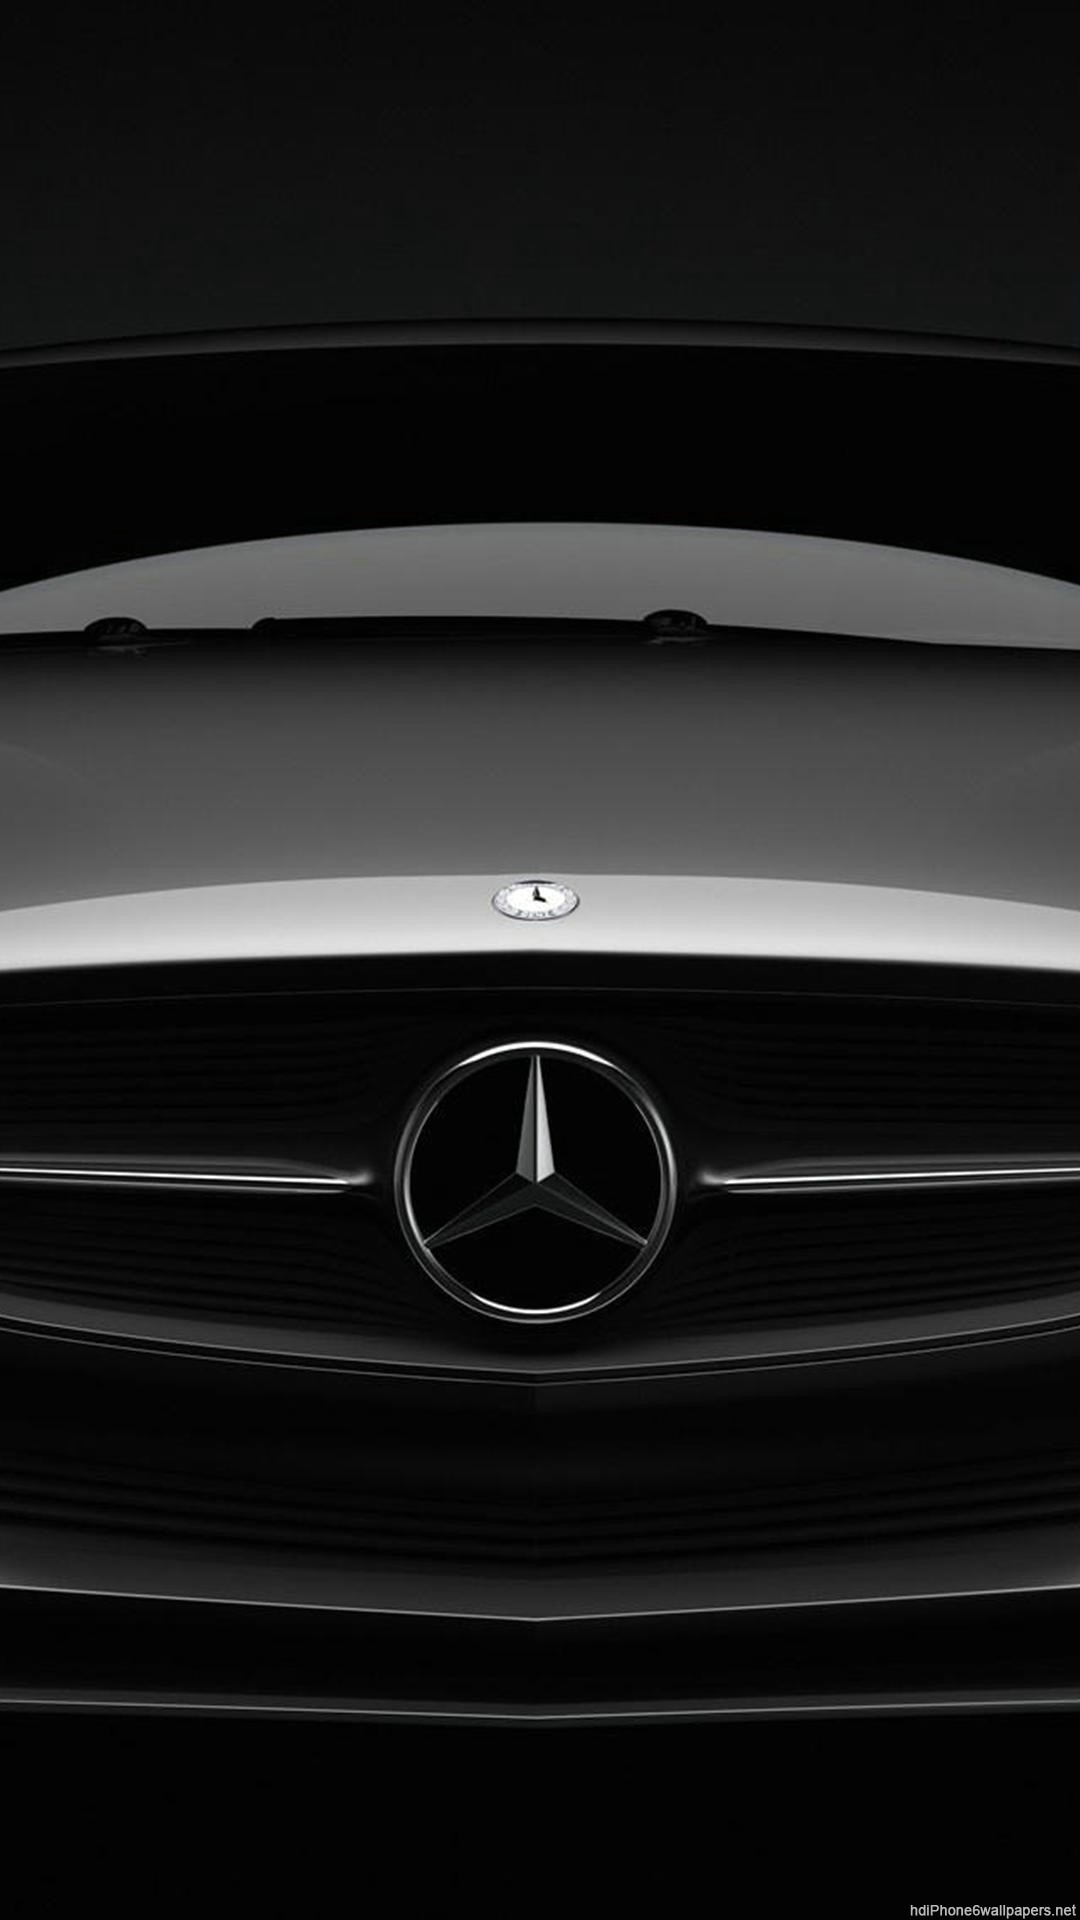 Mercedes benz logo wallpapers 60 pictures 1920x1200 mercedes amg logo wallpaper vorsteiner mercedes benz cls63 voltagebd Image collections